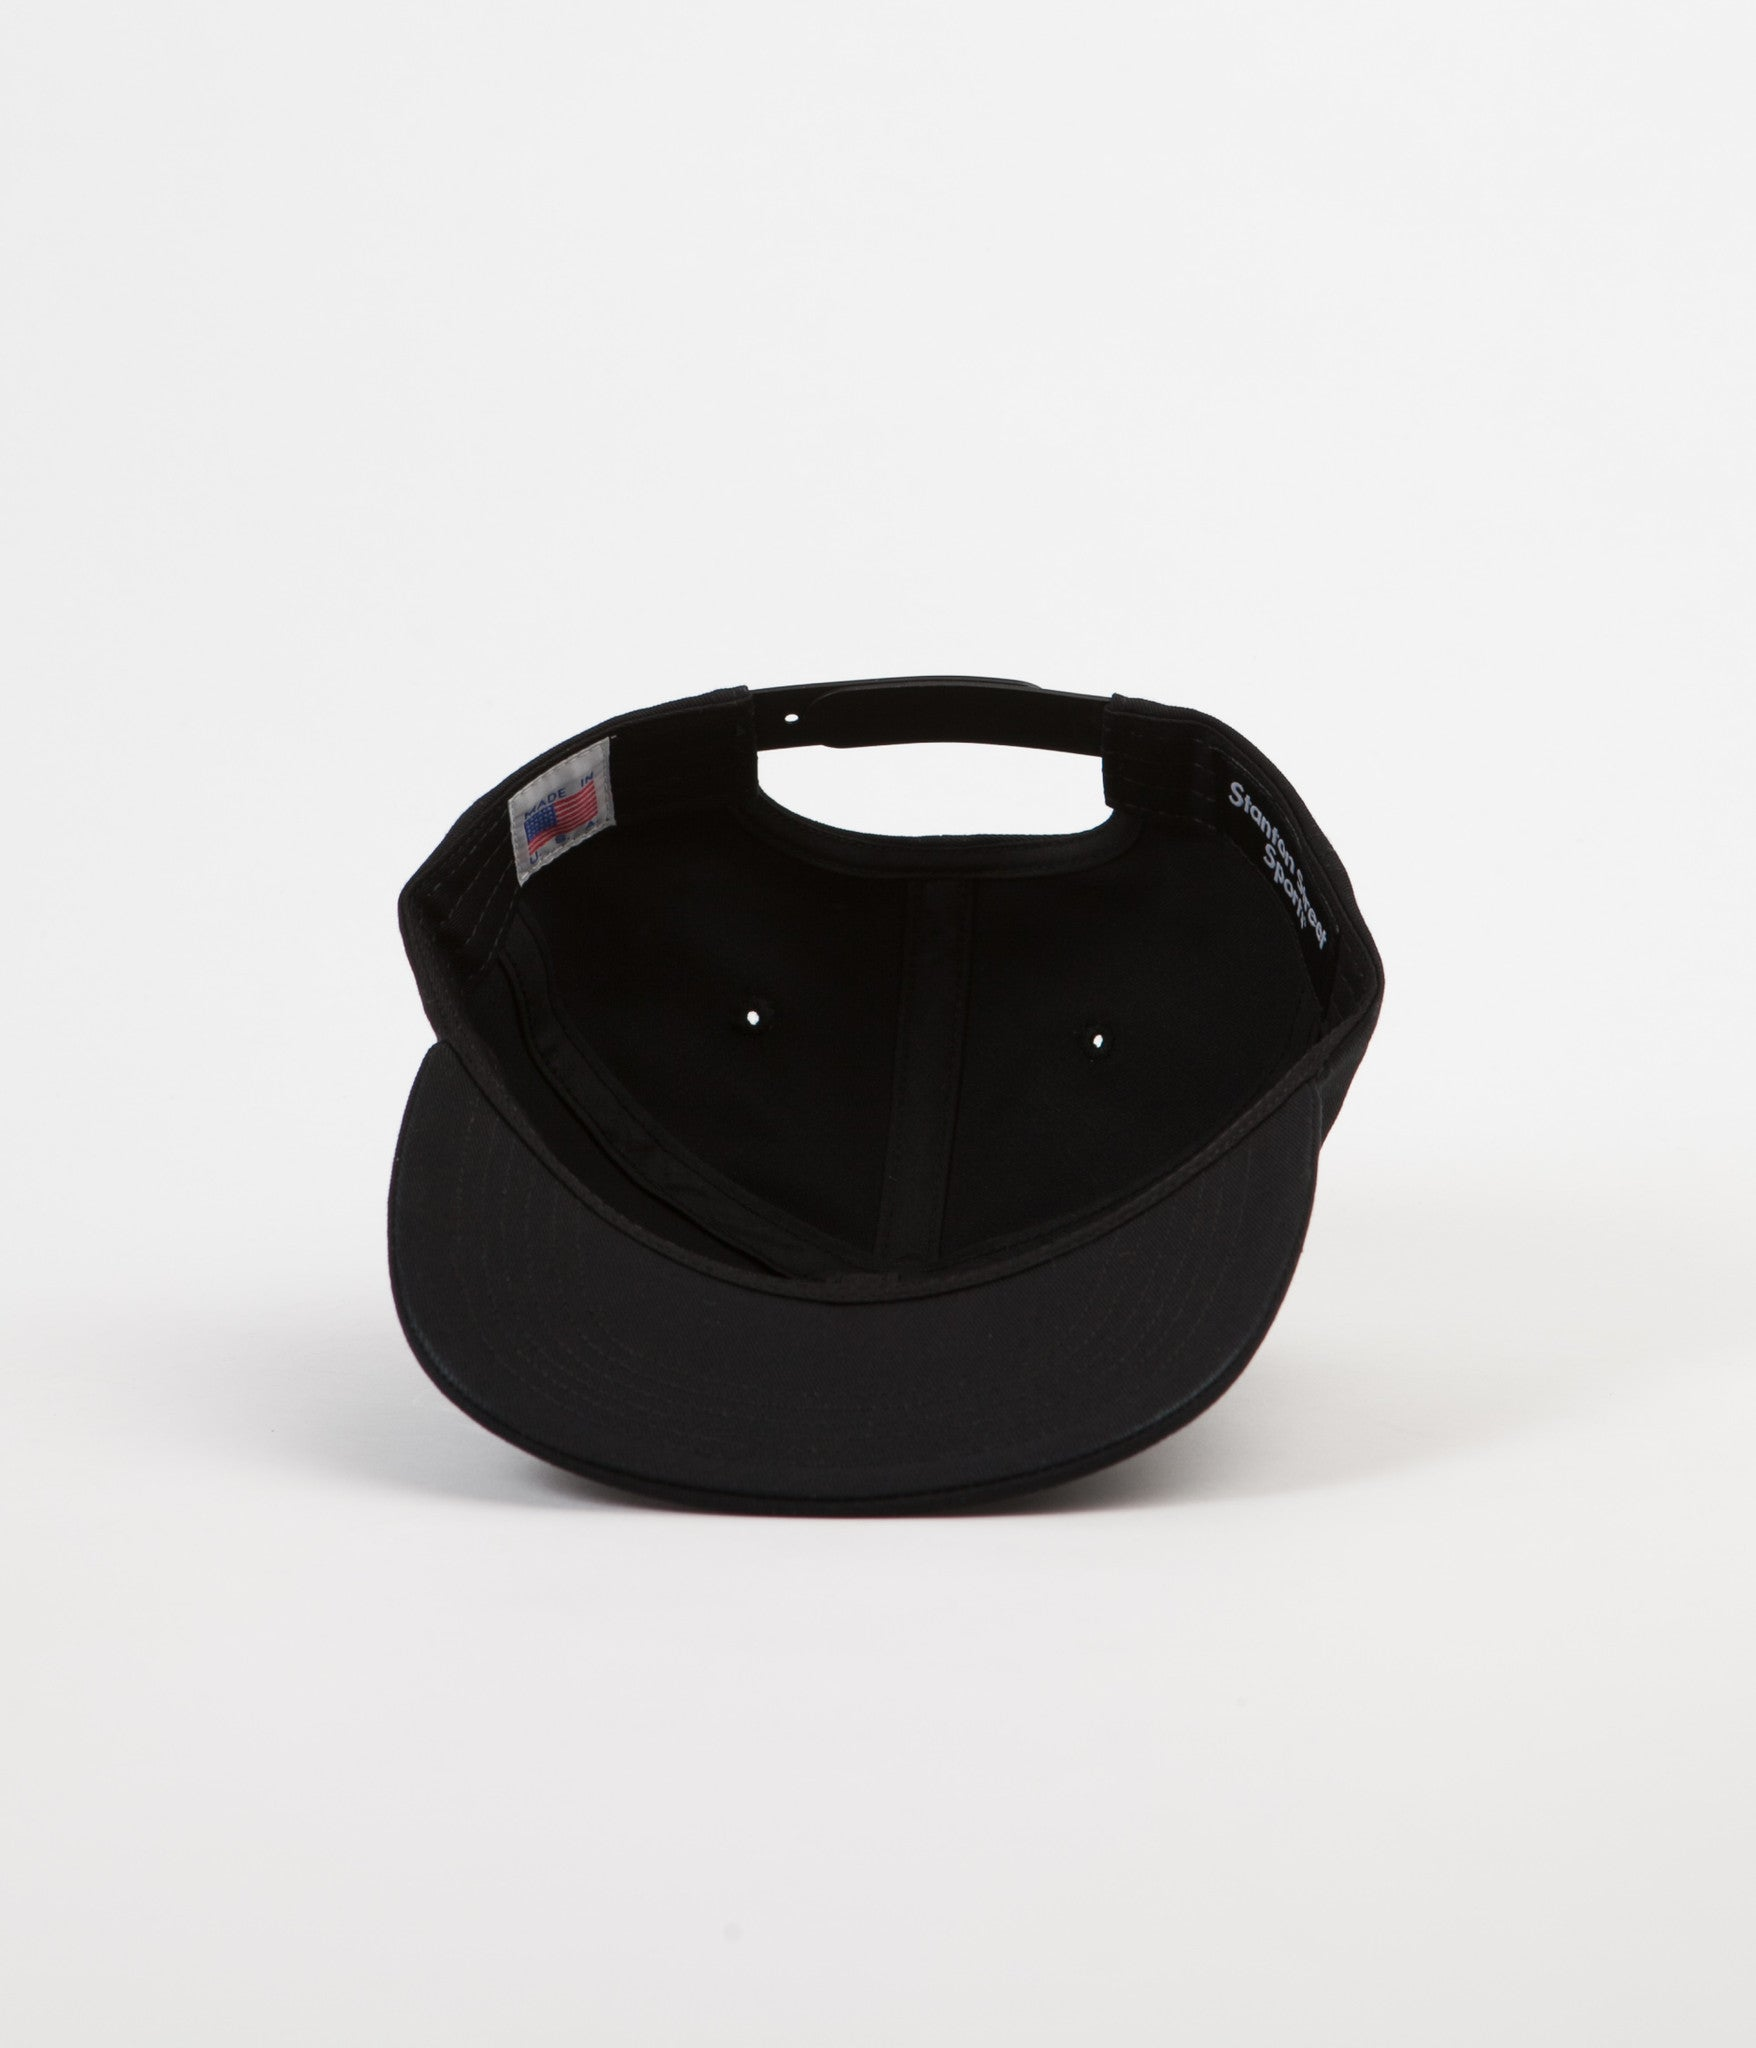 Stanton Street Sports Paint Snapback Cap - Black